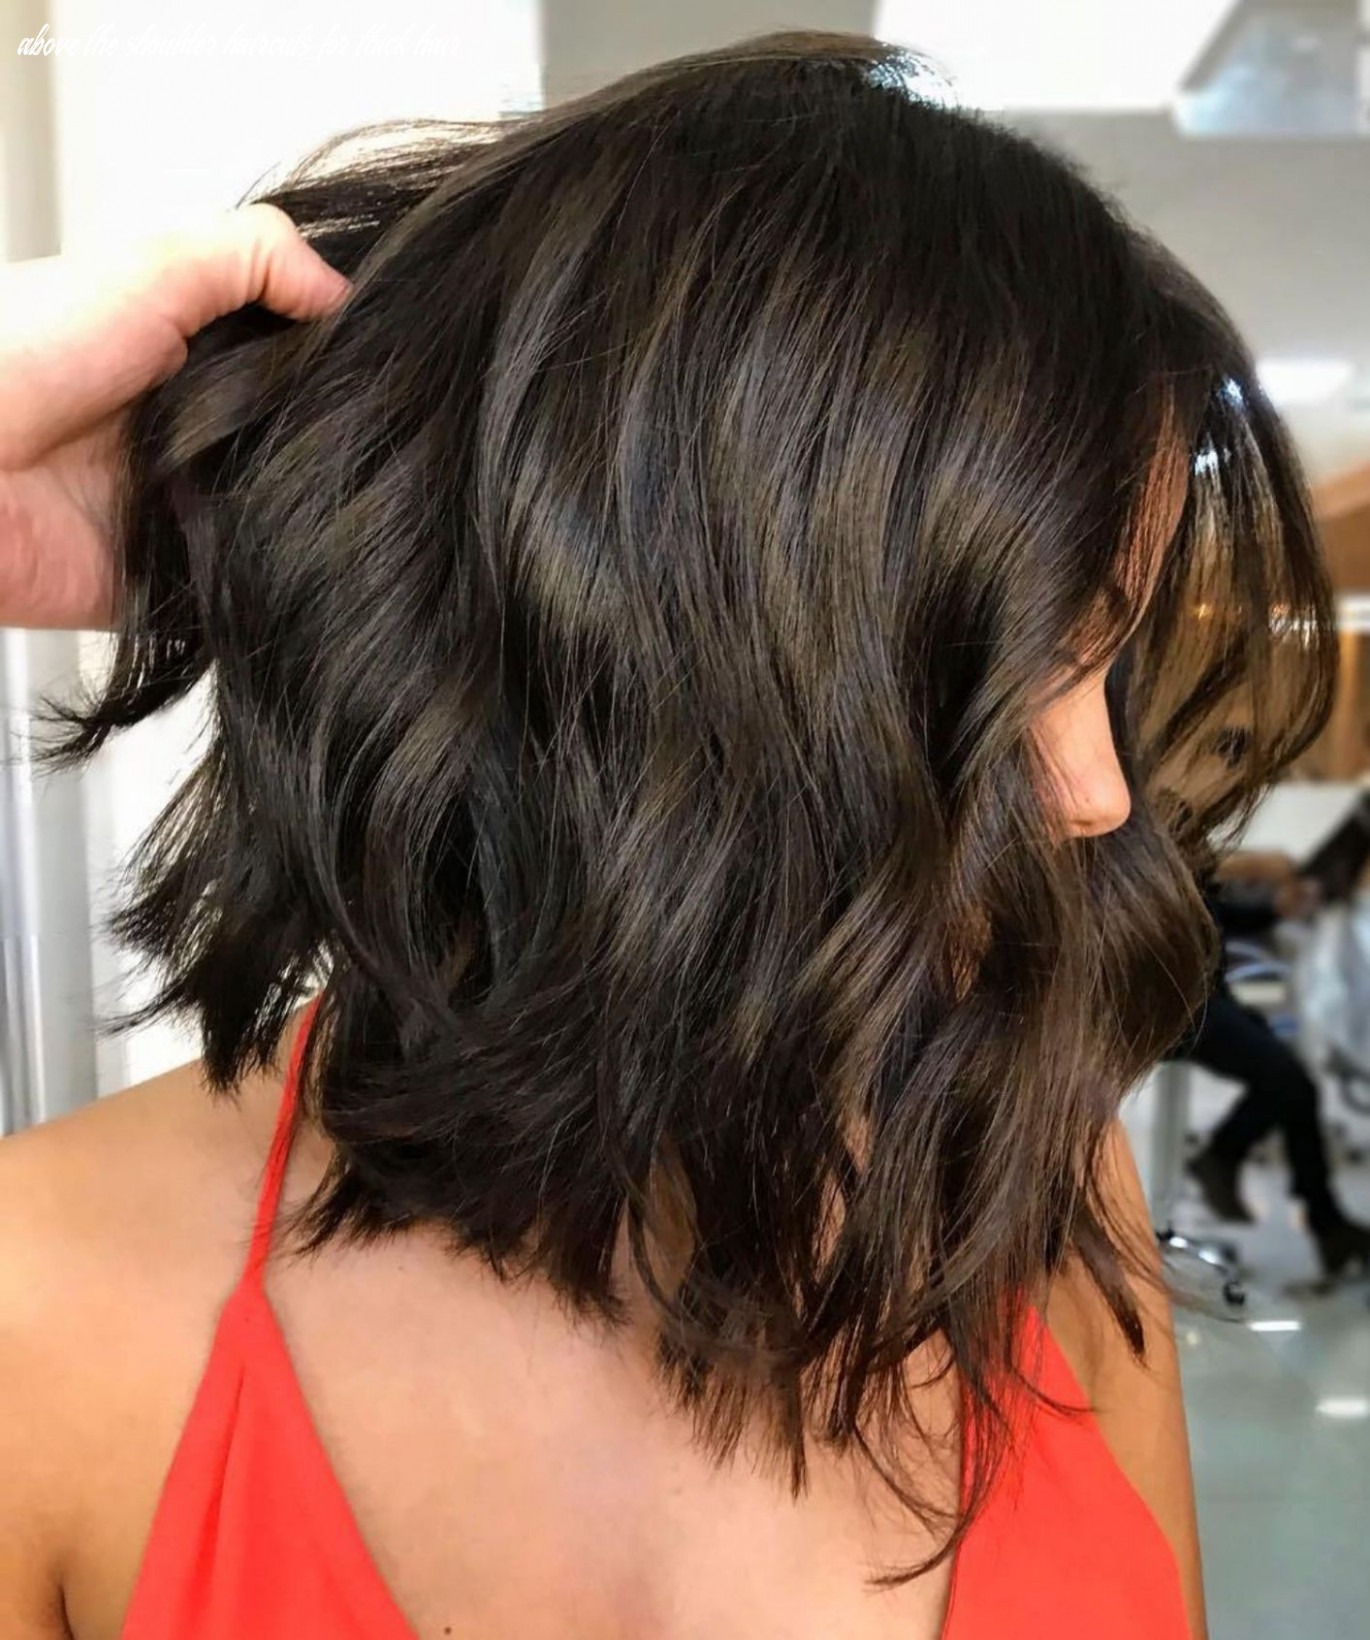 Pin on haare frisuren above the shoulder haircuts for thick hair